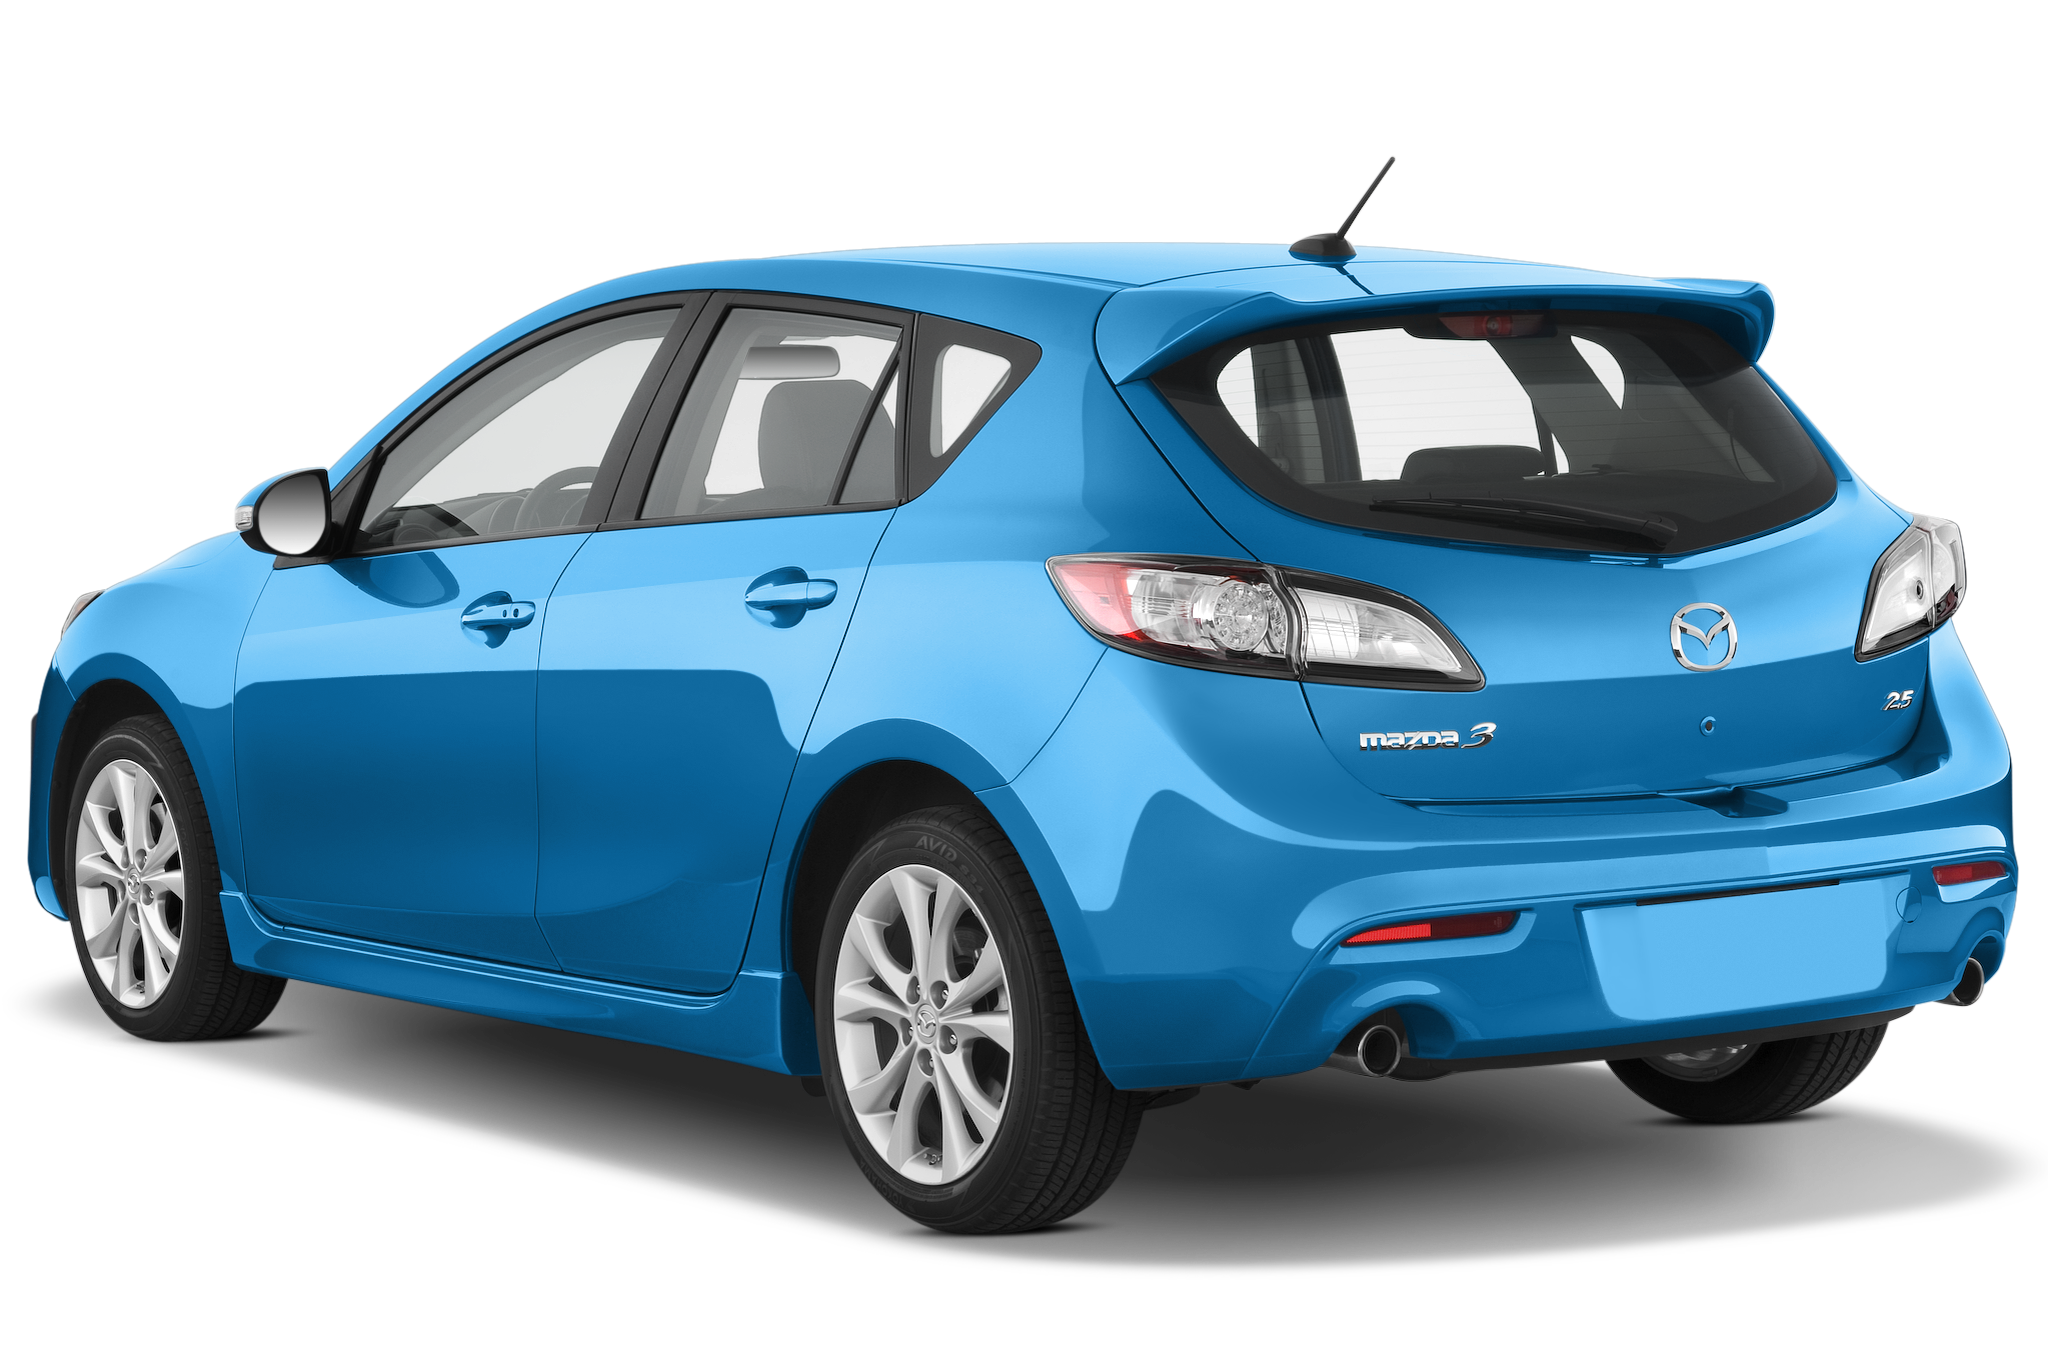 Mazda 2 Sedan Vs Hatchback >> 2010 Mazda 3 vs MazdaSpeed 3 - Mazda Sports Hatchback ...